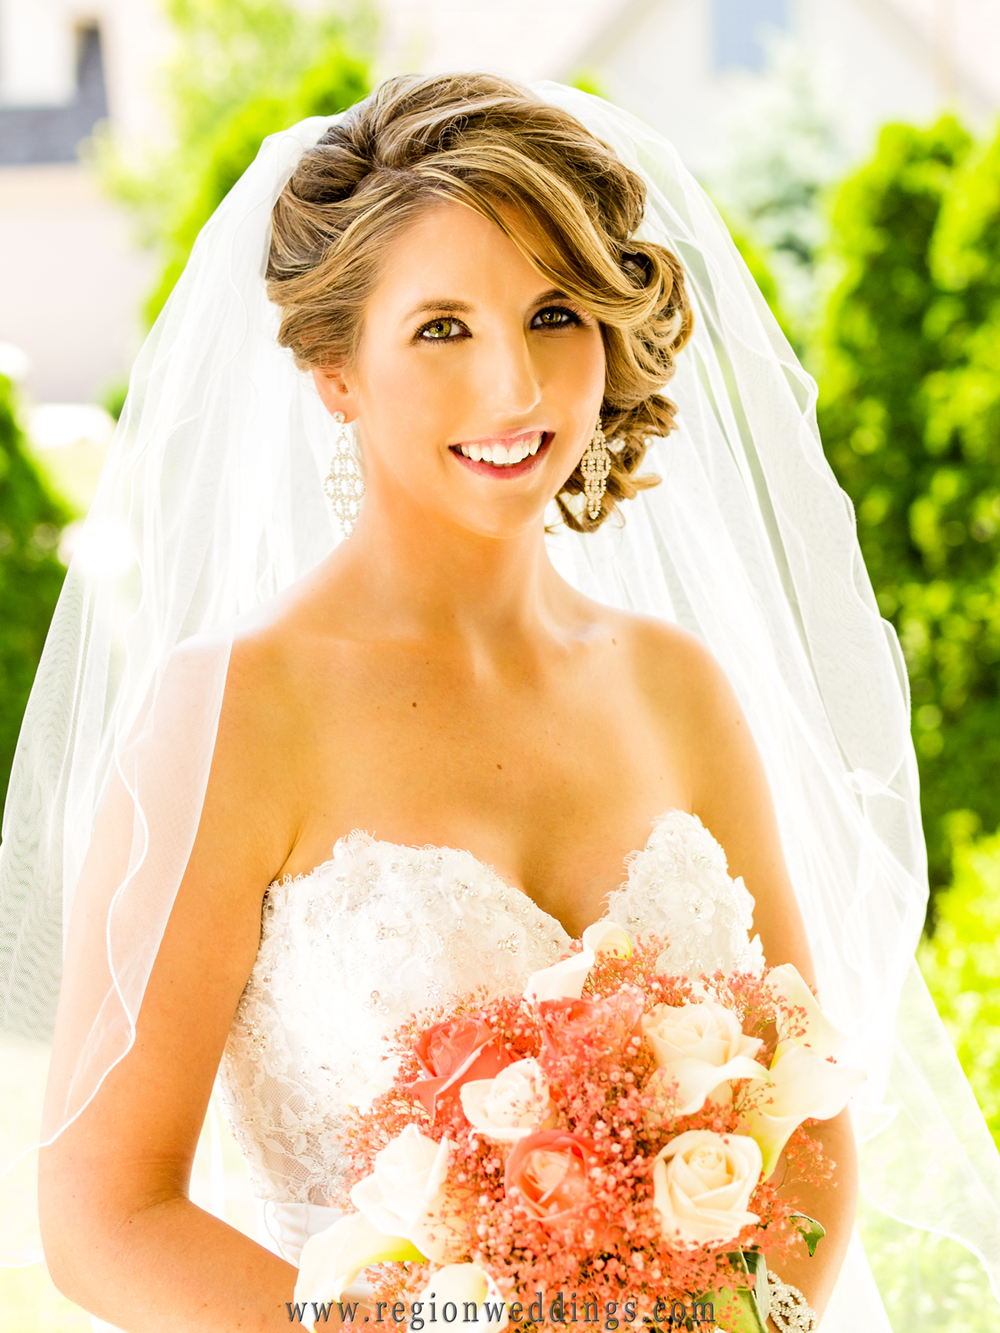 A bride basks in sunshine for her wedding day portrait at her Cedar Lake home.